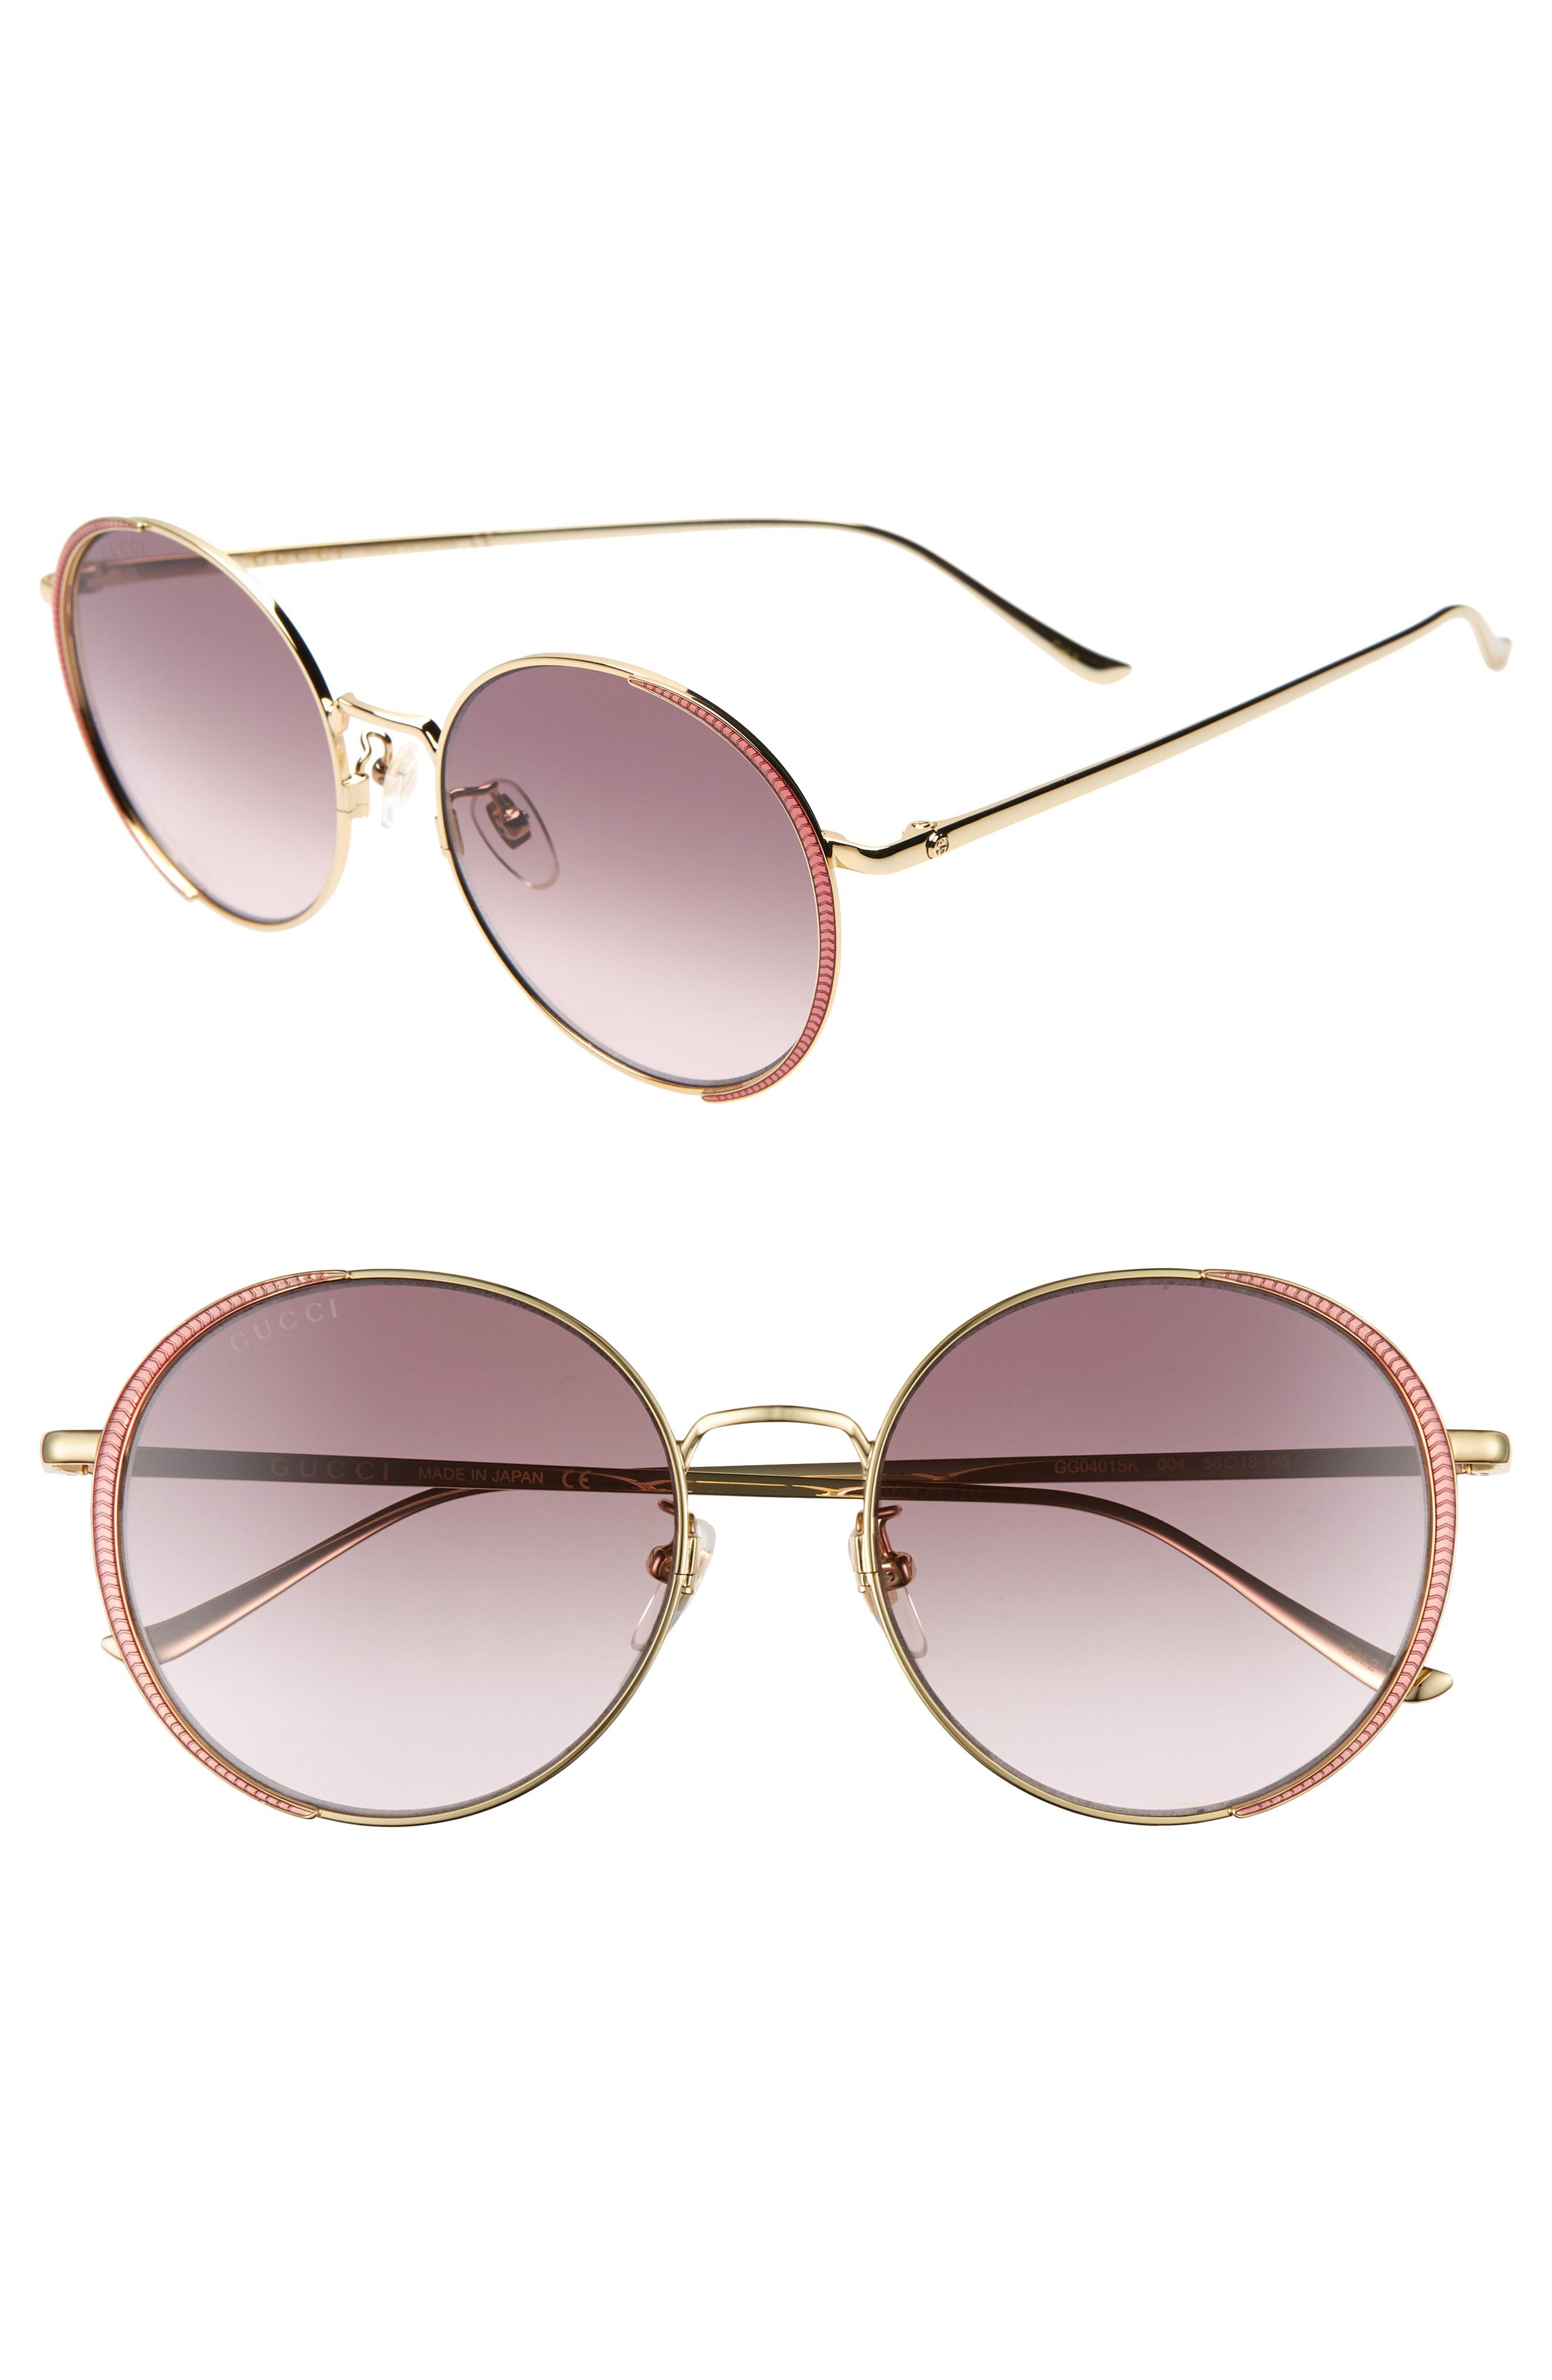 de693c7b9a Gucci. Women s 56mm Gradient Round Sunglasses